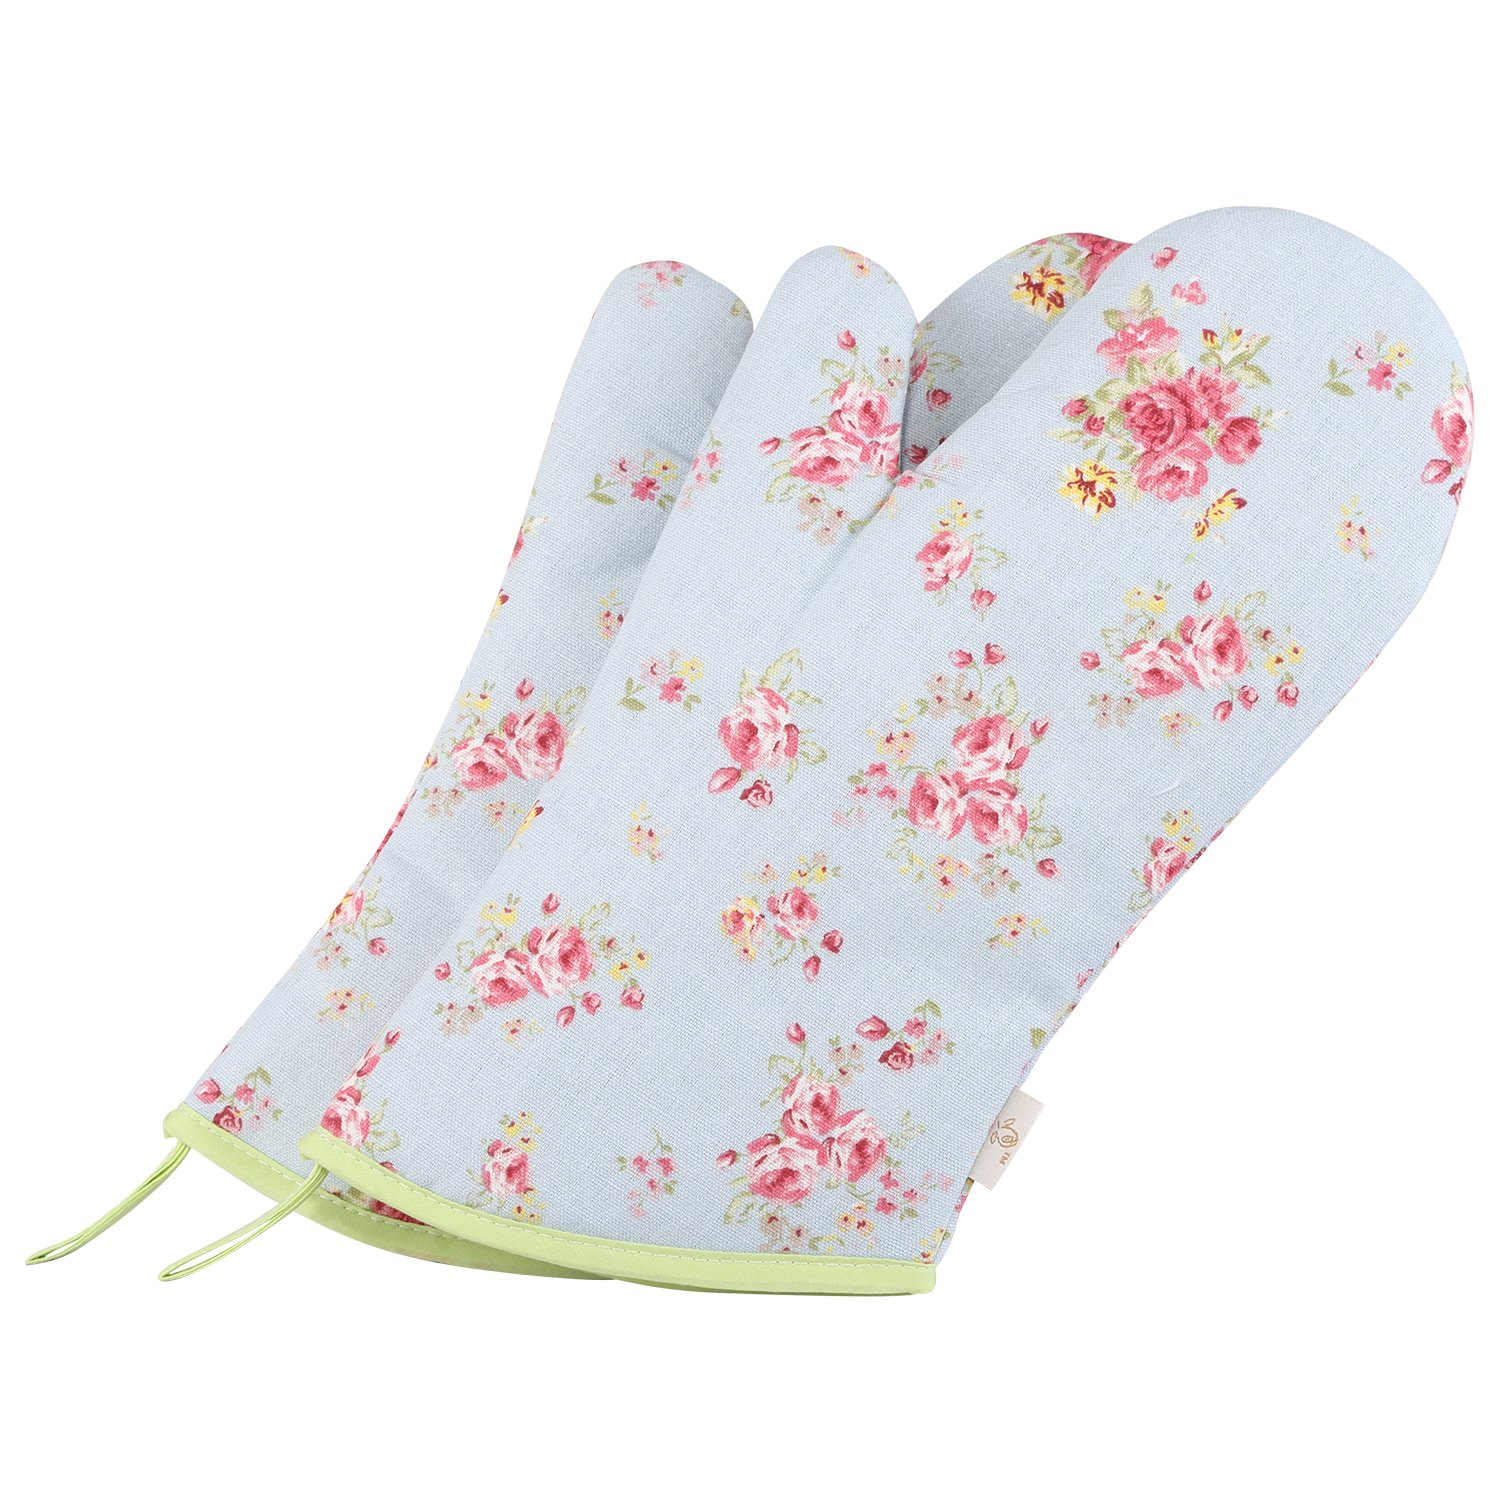 Neoviva Cotton Canvas Oven Mitt for Adult, Pack of 2, Floral Ballad Blue